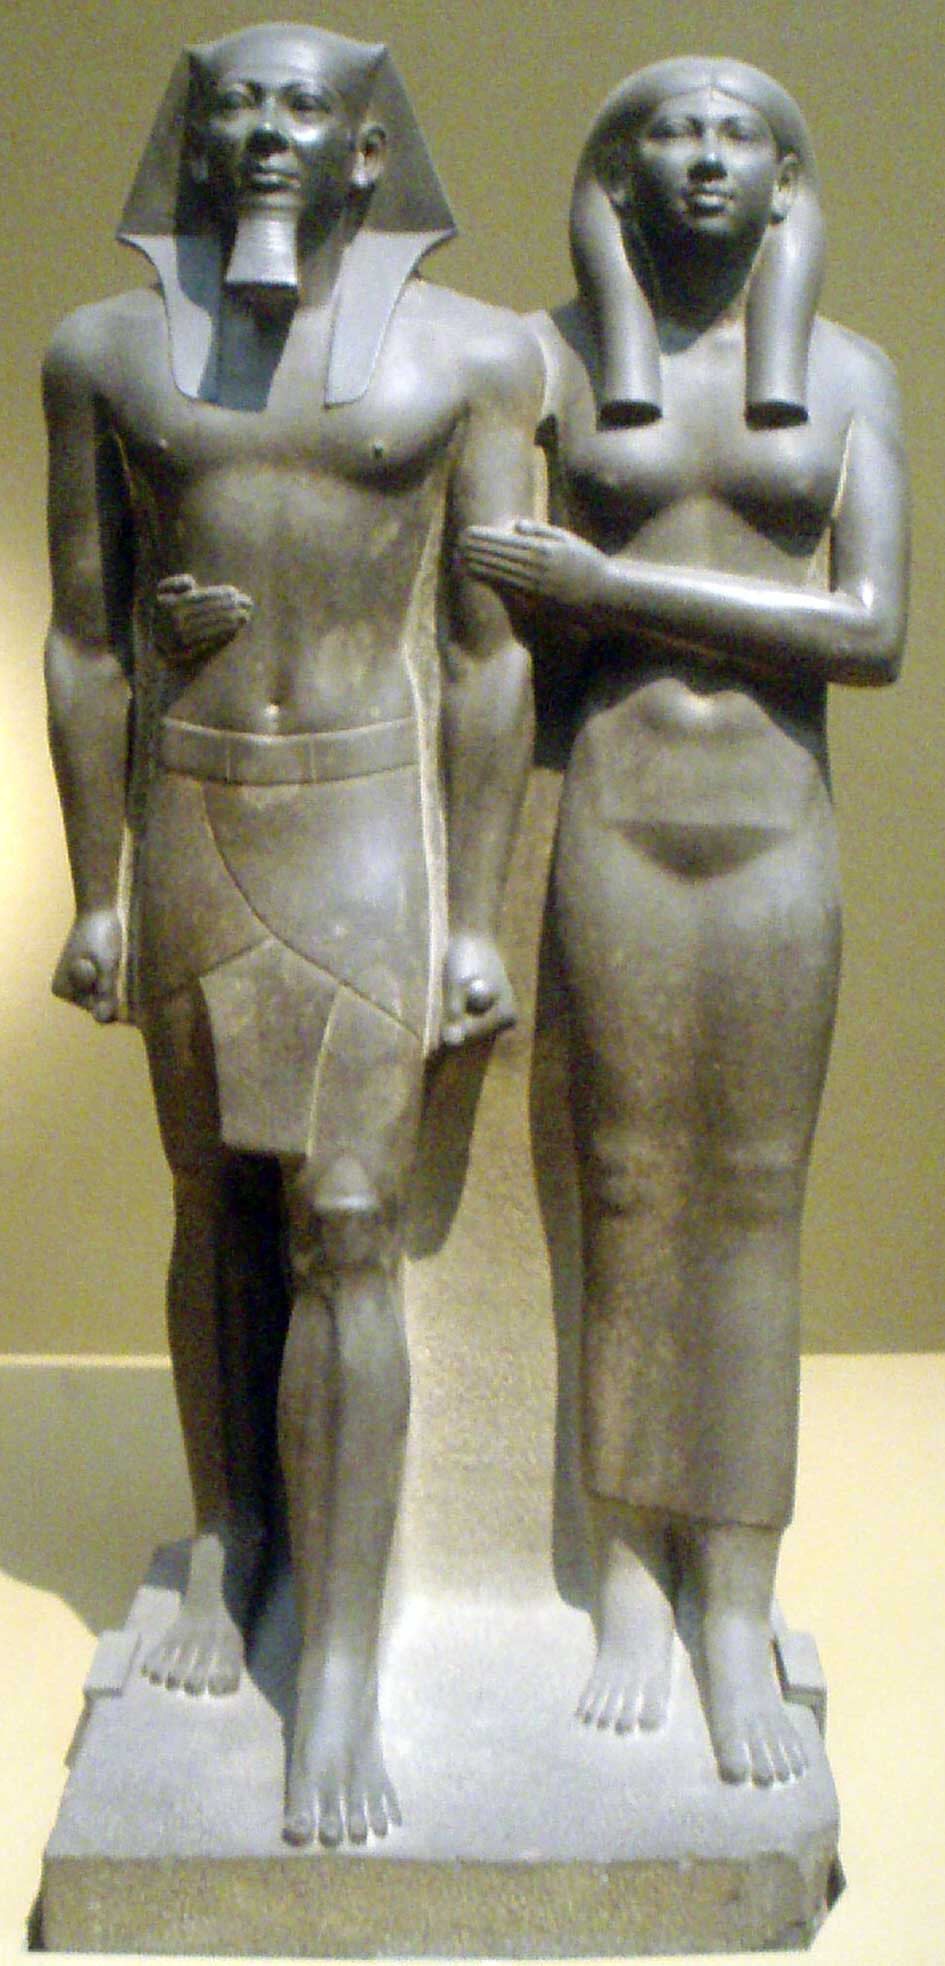 The image is that of the Egyptian king Menkaure and his queen, Khamerernebty II. Hewn from dark stone, both king and queen are stoic in appearance and possess ideal bodies. Although standing shoulder to shoulder, Menkaure's foot steps ahead of his wife to illustrate his superior position.